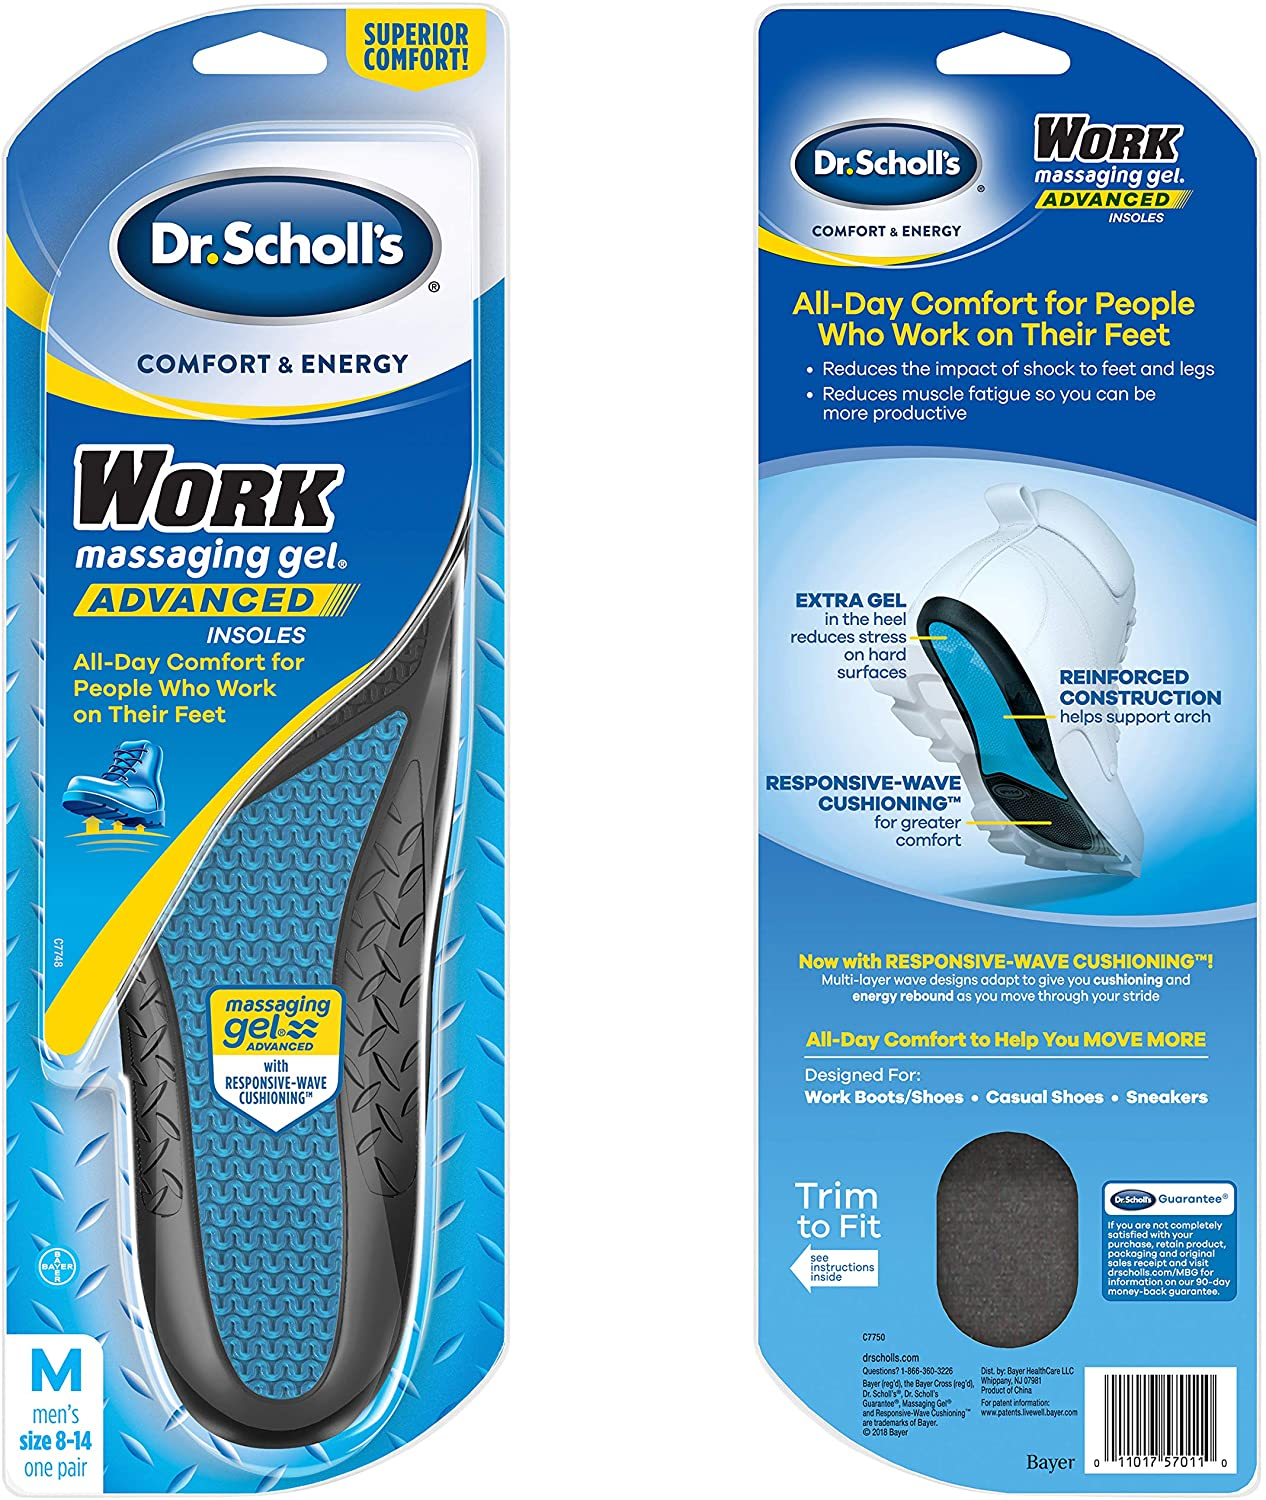 dr scholl store near me